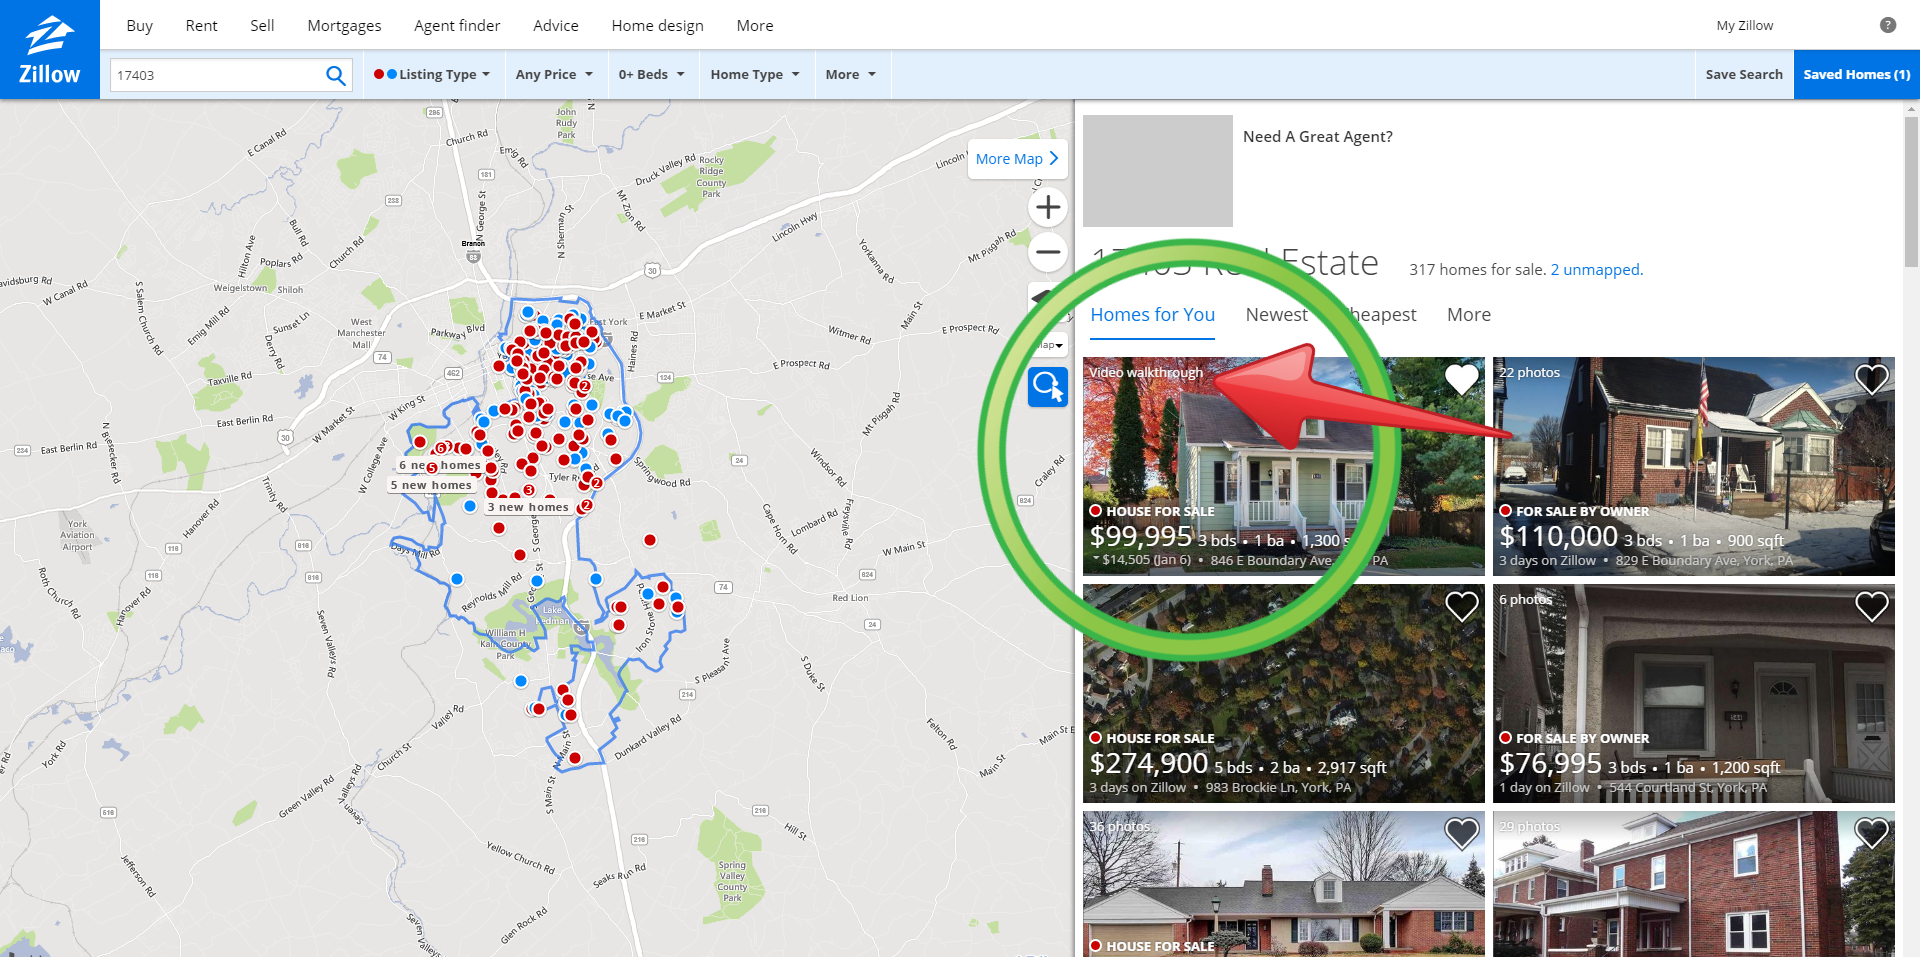 How to boost listing traffic with zillow walkthrough for Zillow site